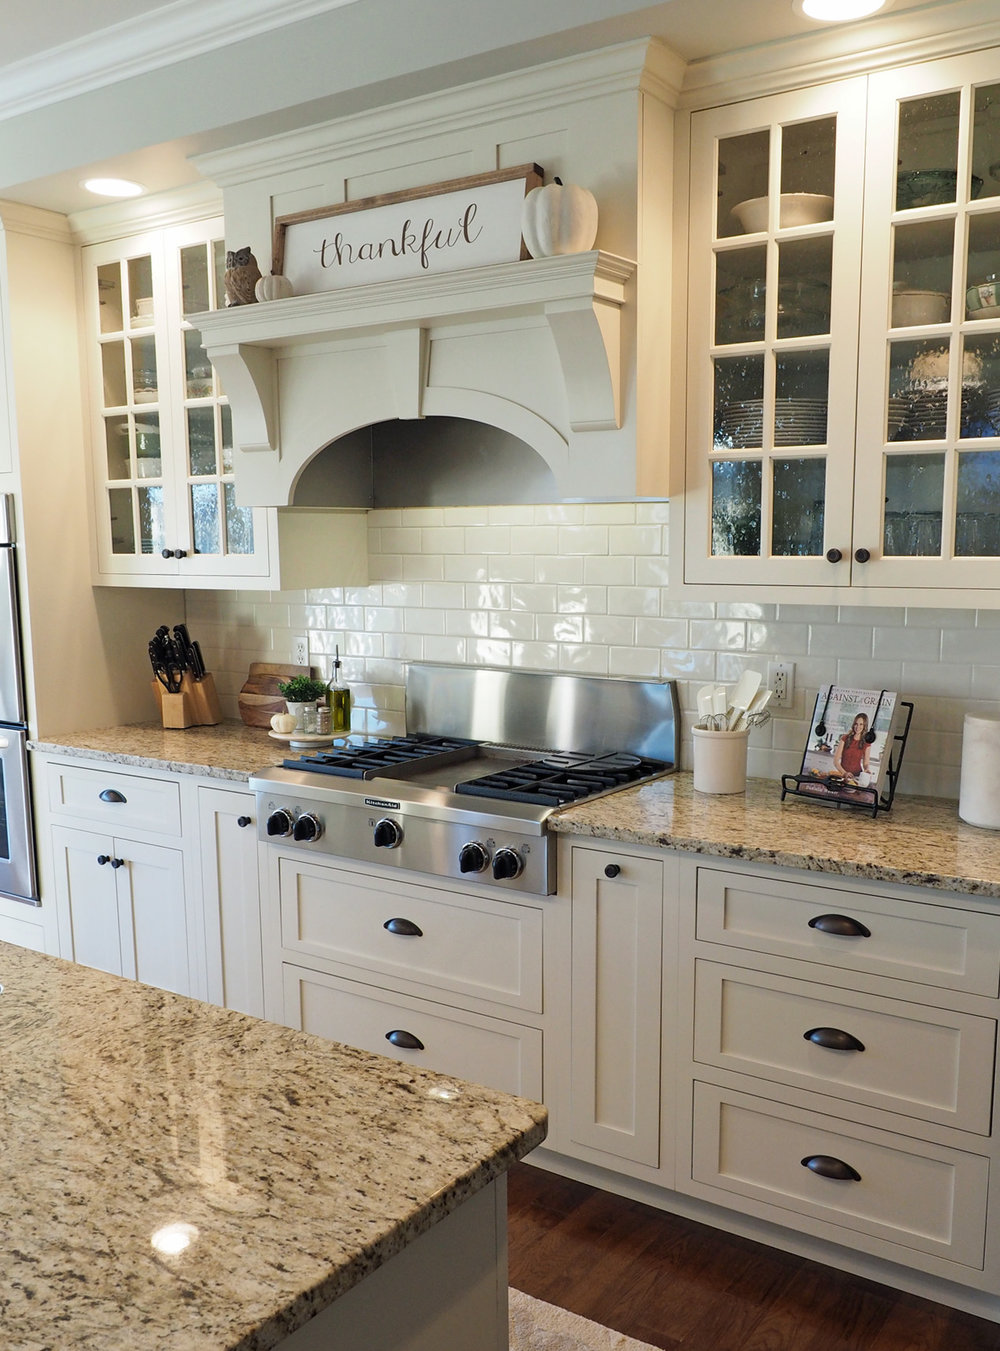 I may have left out a few cleaning details like taking a sharp knife and a cleaning cloth to all the crevices surrounding the cooktop and burners but hey, we'll save that for another post!